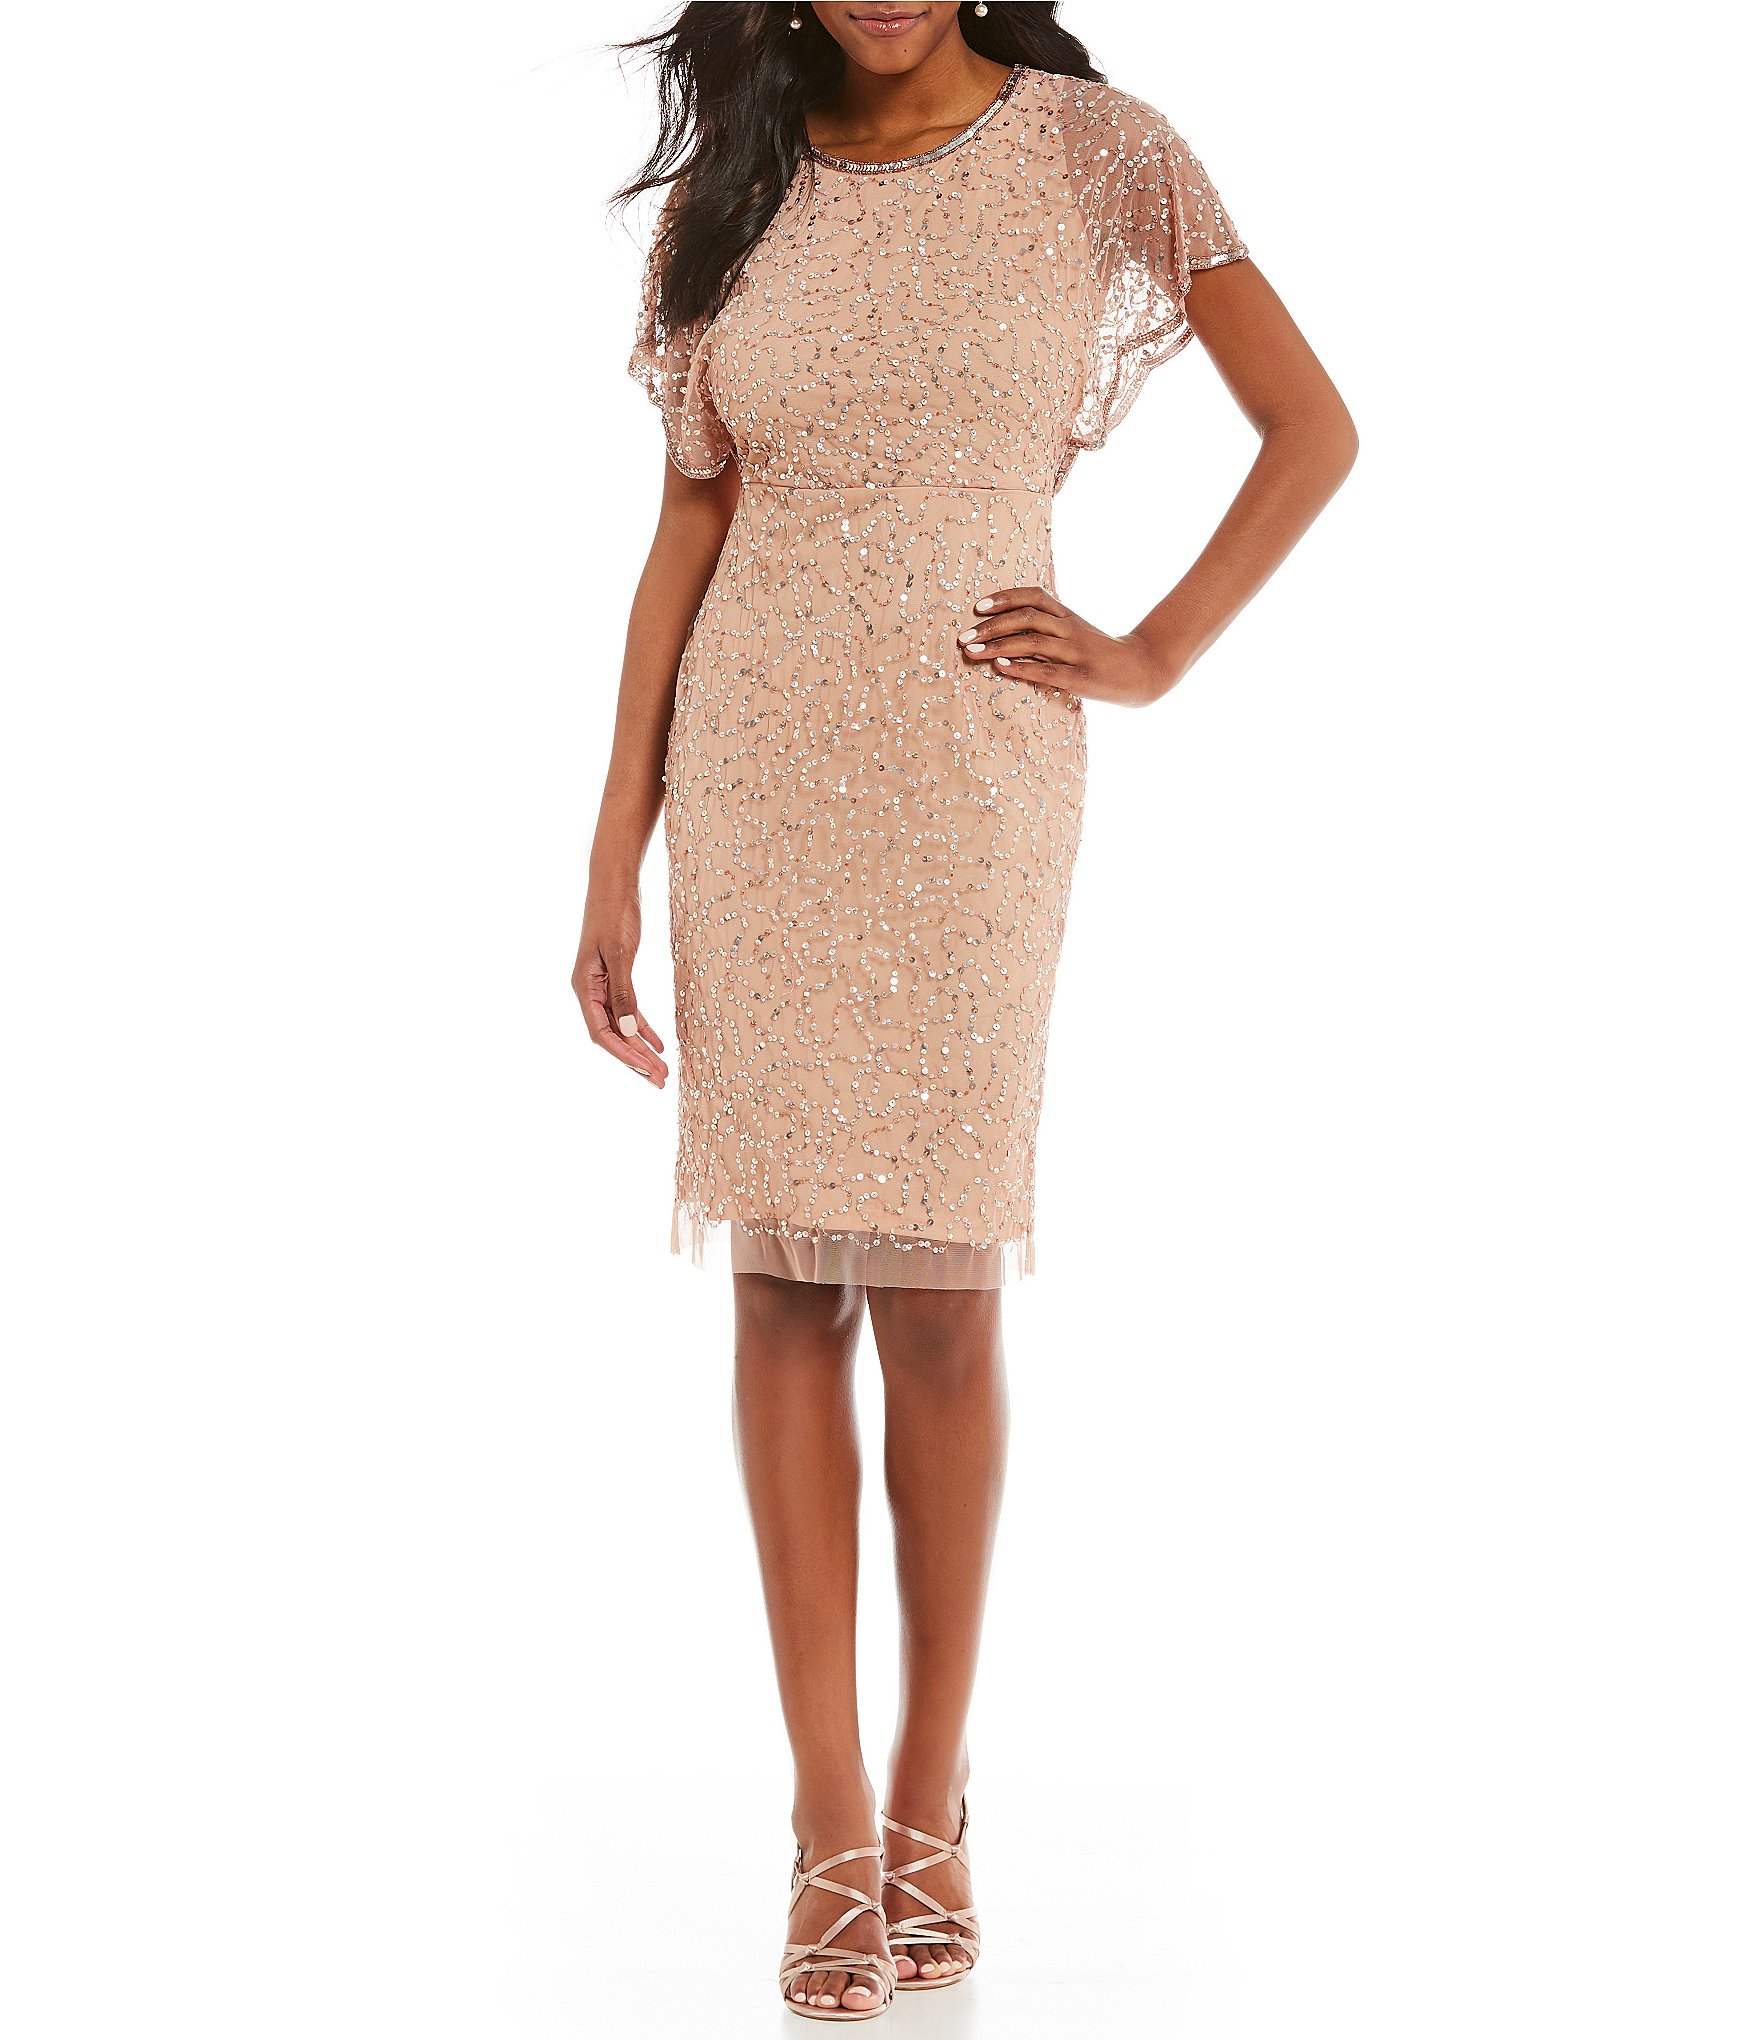 Adrianna Papell Women\'s Cocktail & Party Dresses | Dillards